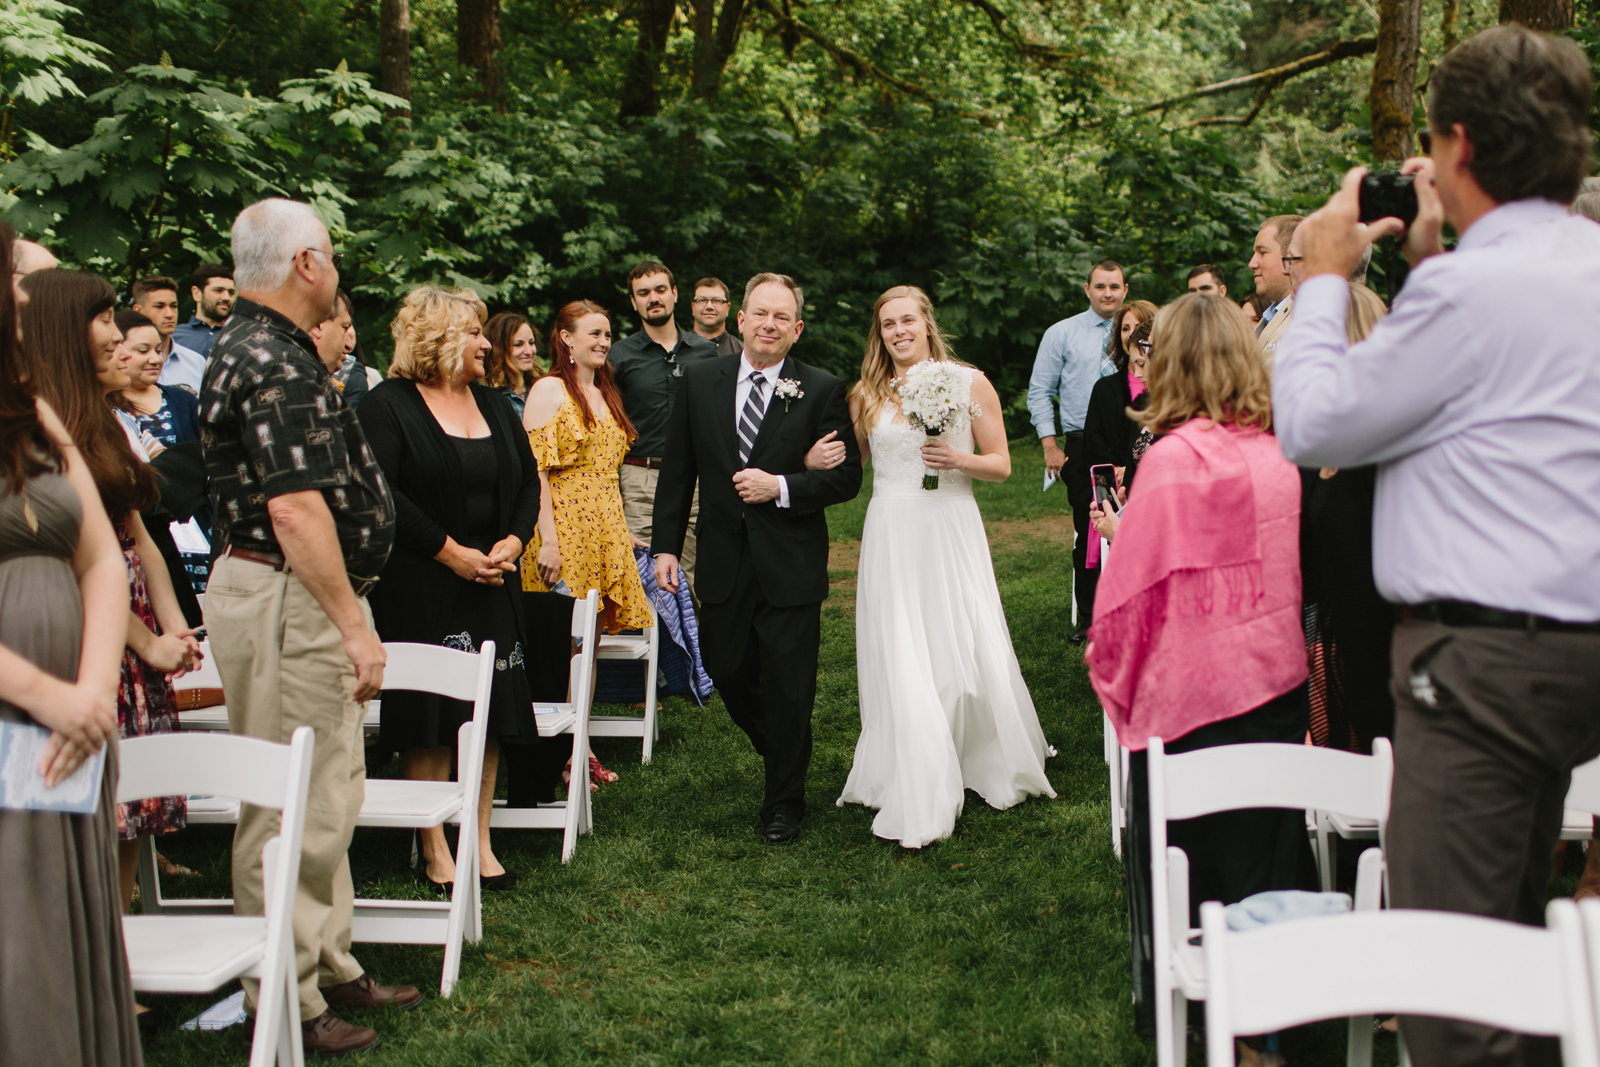 The bride walks down the aisle with her father during the wedding ceremony at Bridal Veil Lakes in Corbett, OR